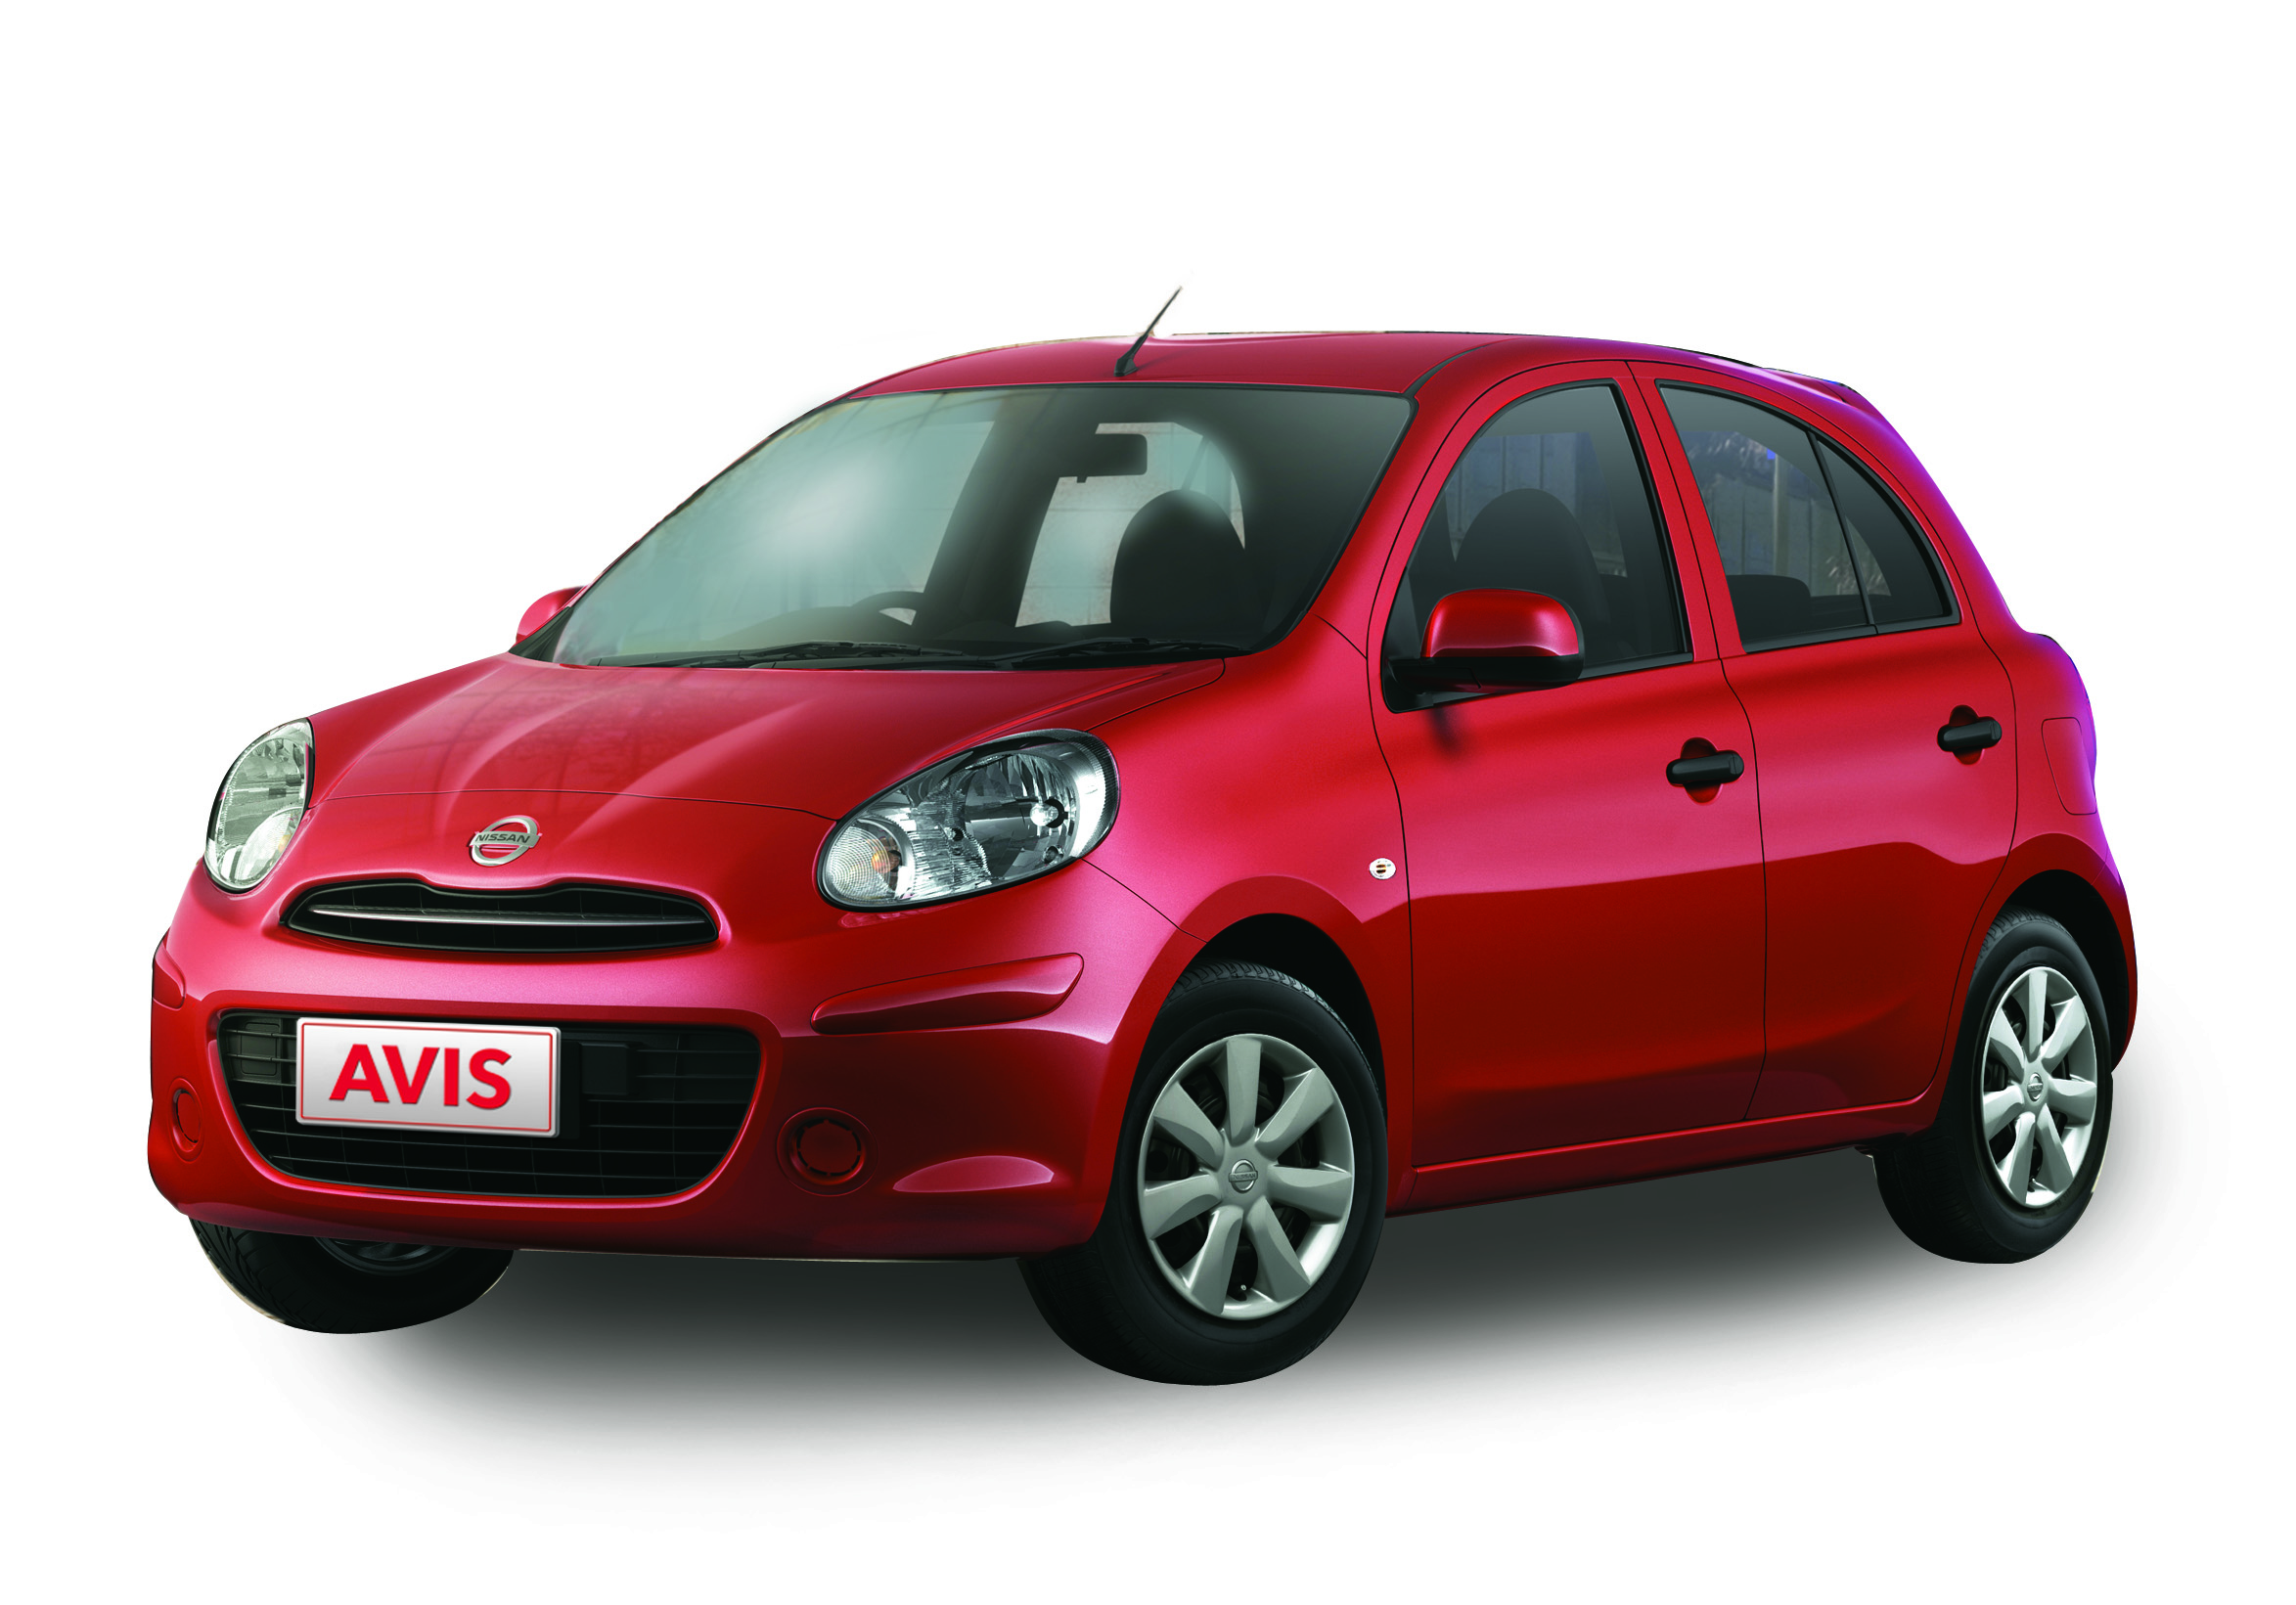 avis travel agents and wholesalers group a nissan micra or similar ecmr